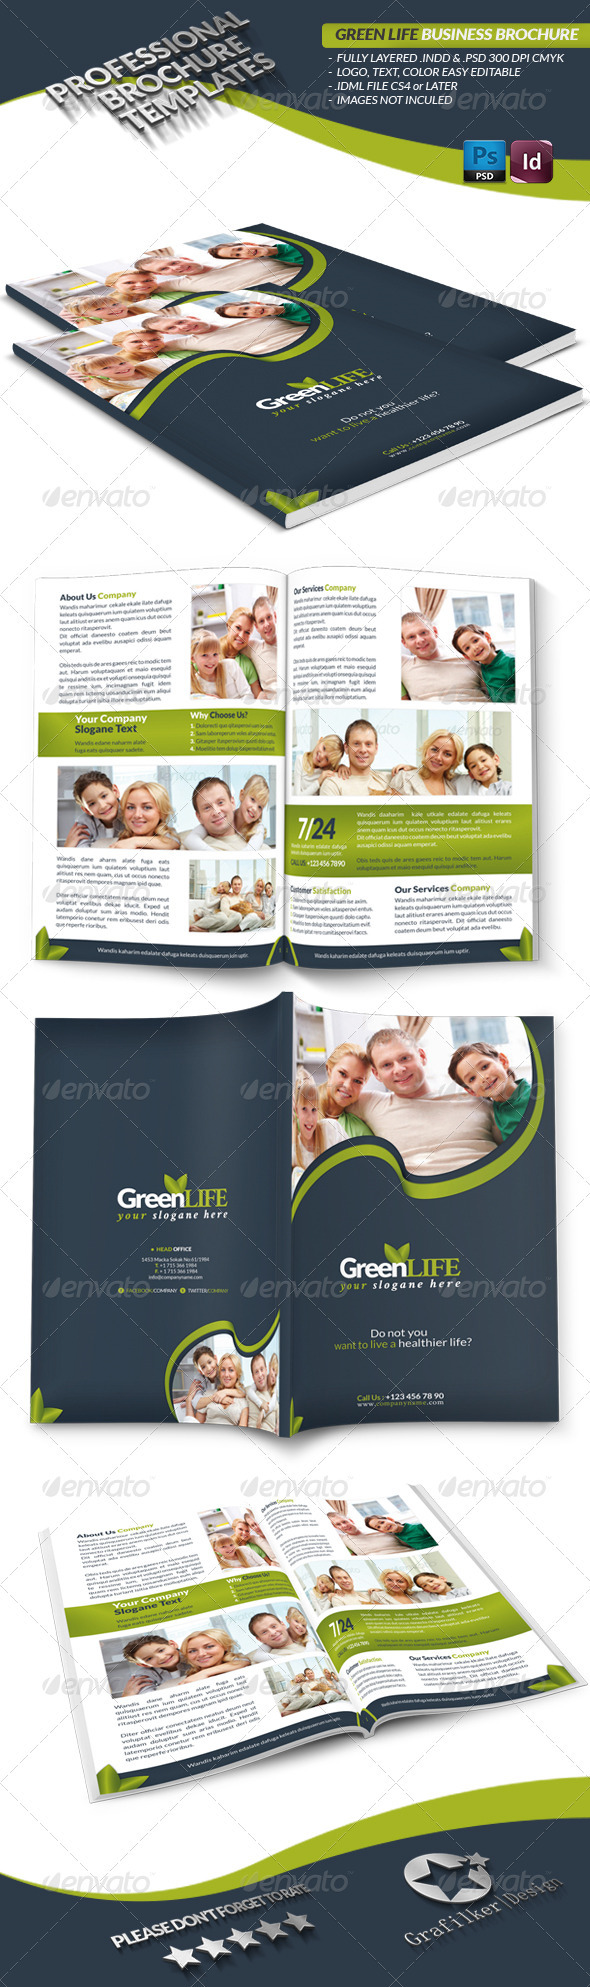 GraphicRiver Green Life Business Brochure 3643566